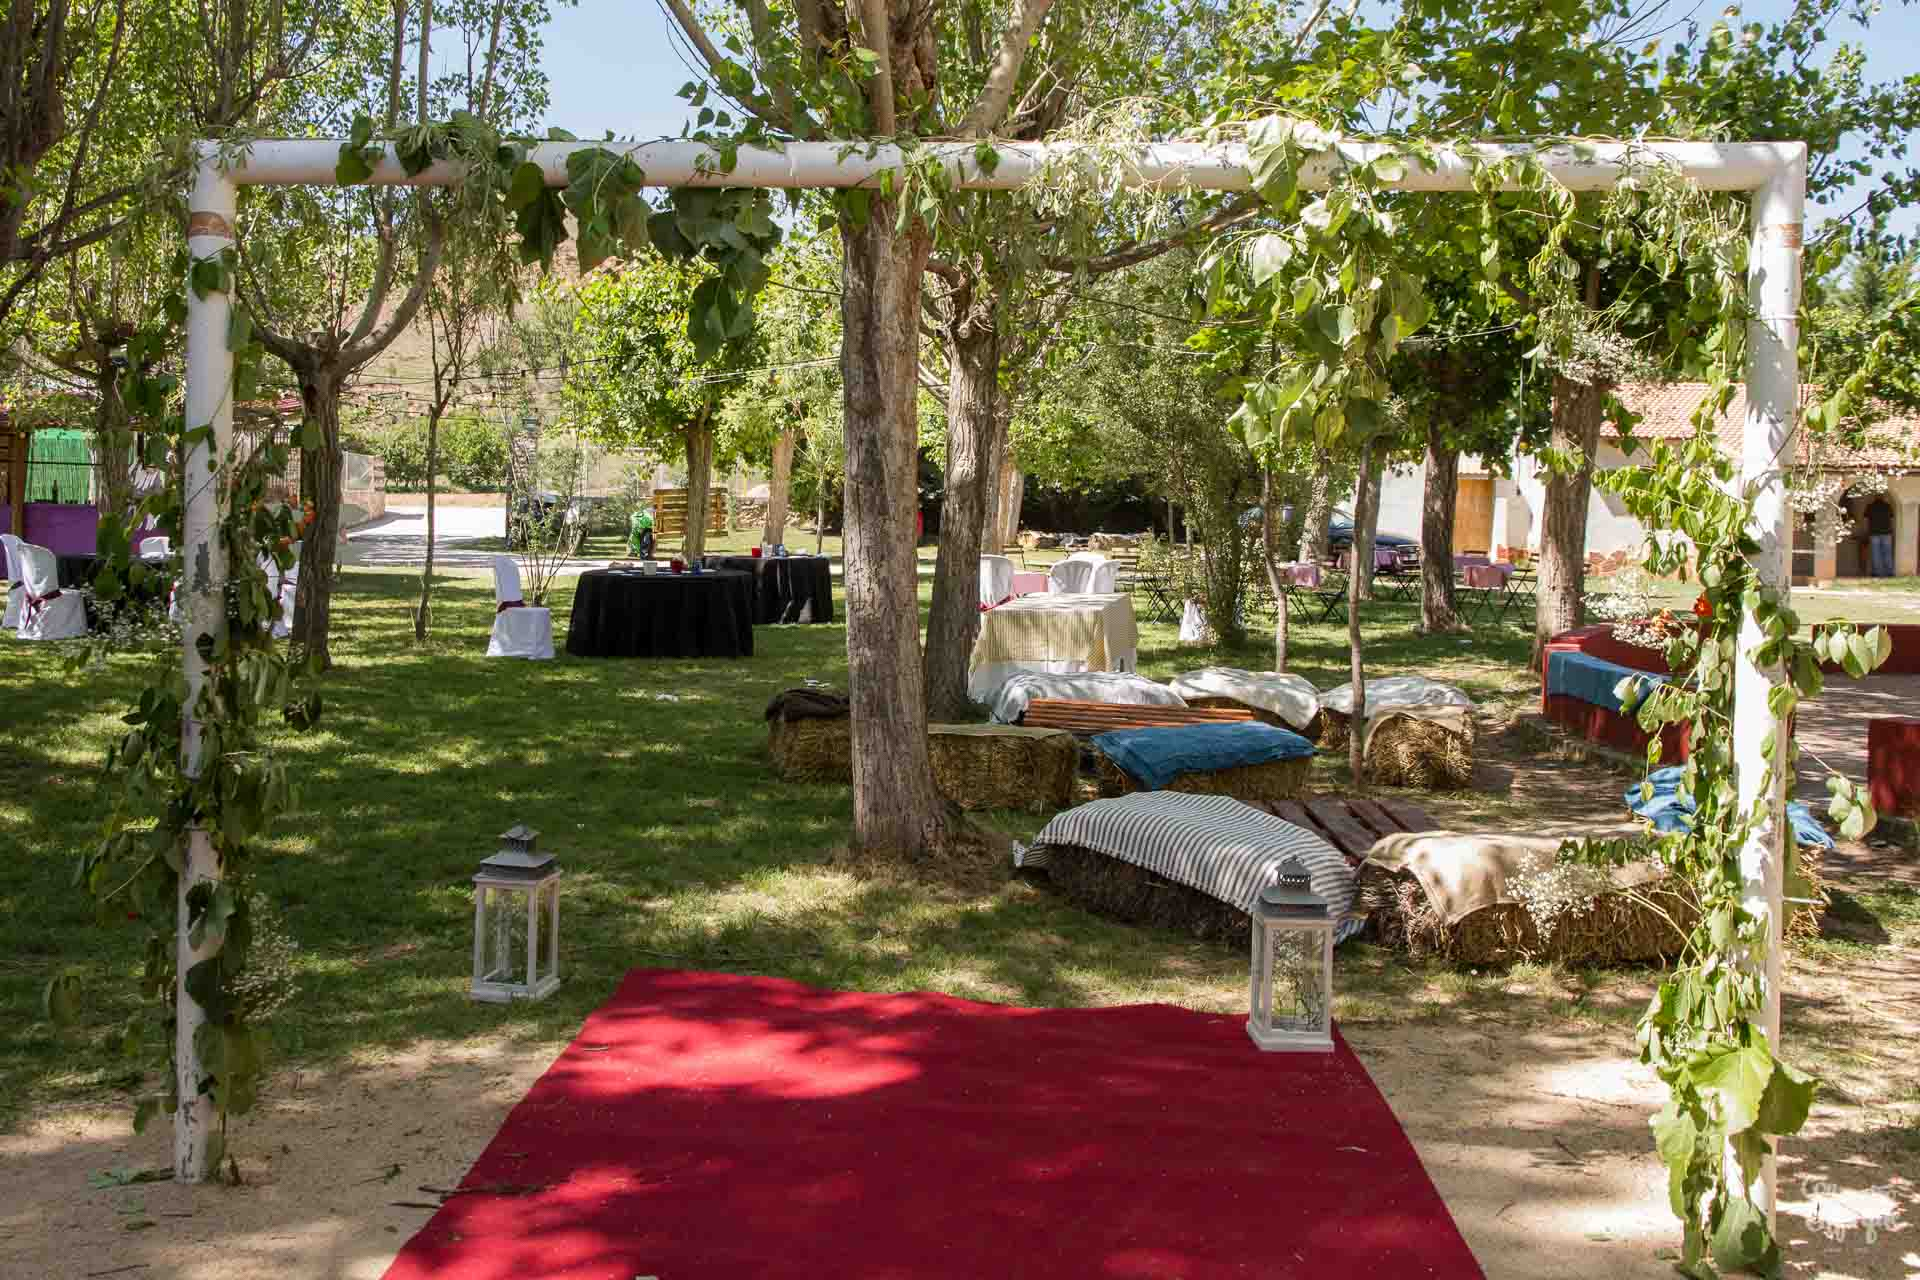 tu boda country wedding glamping guests wedding natural boda campestre estilo style slow